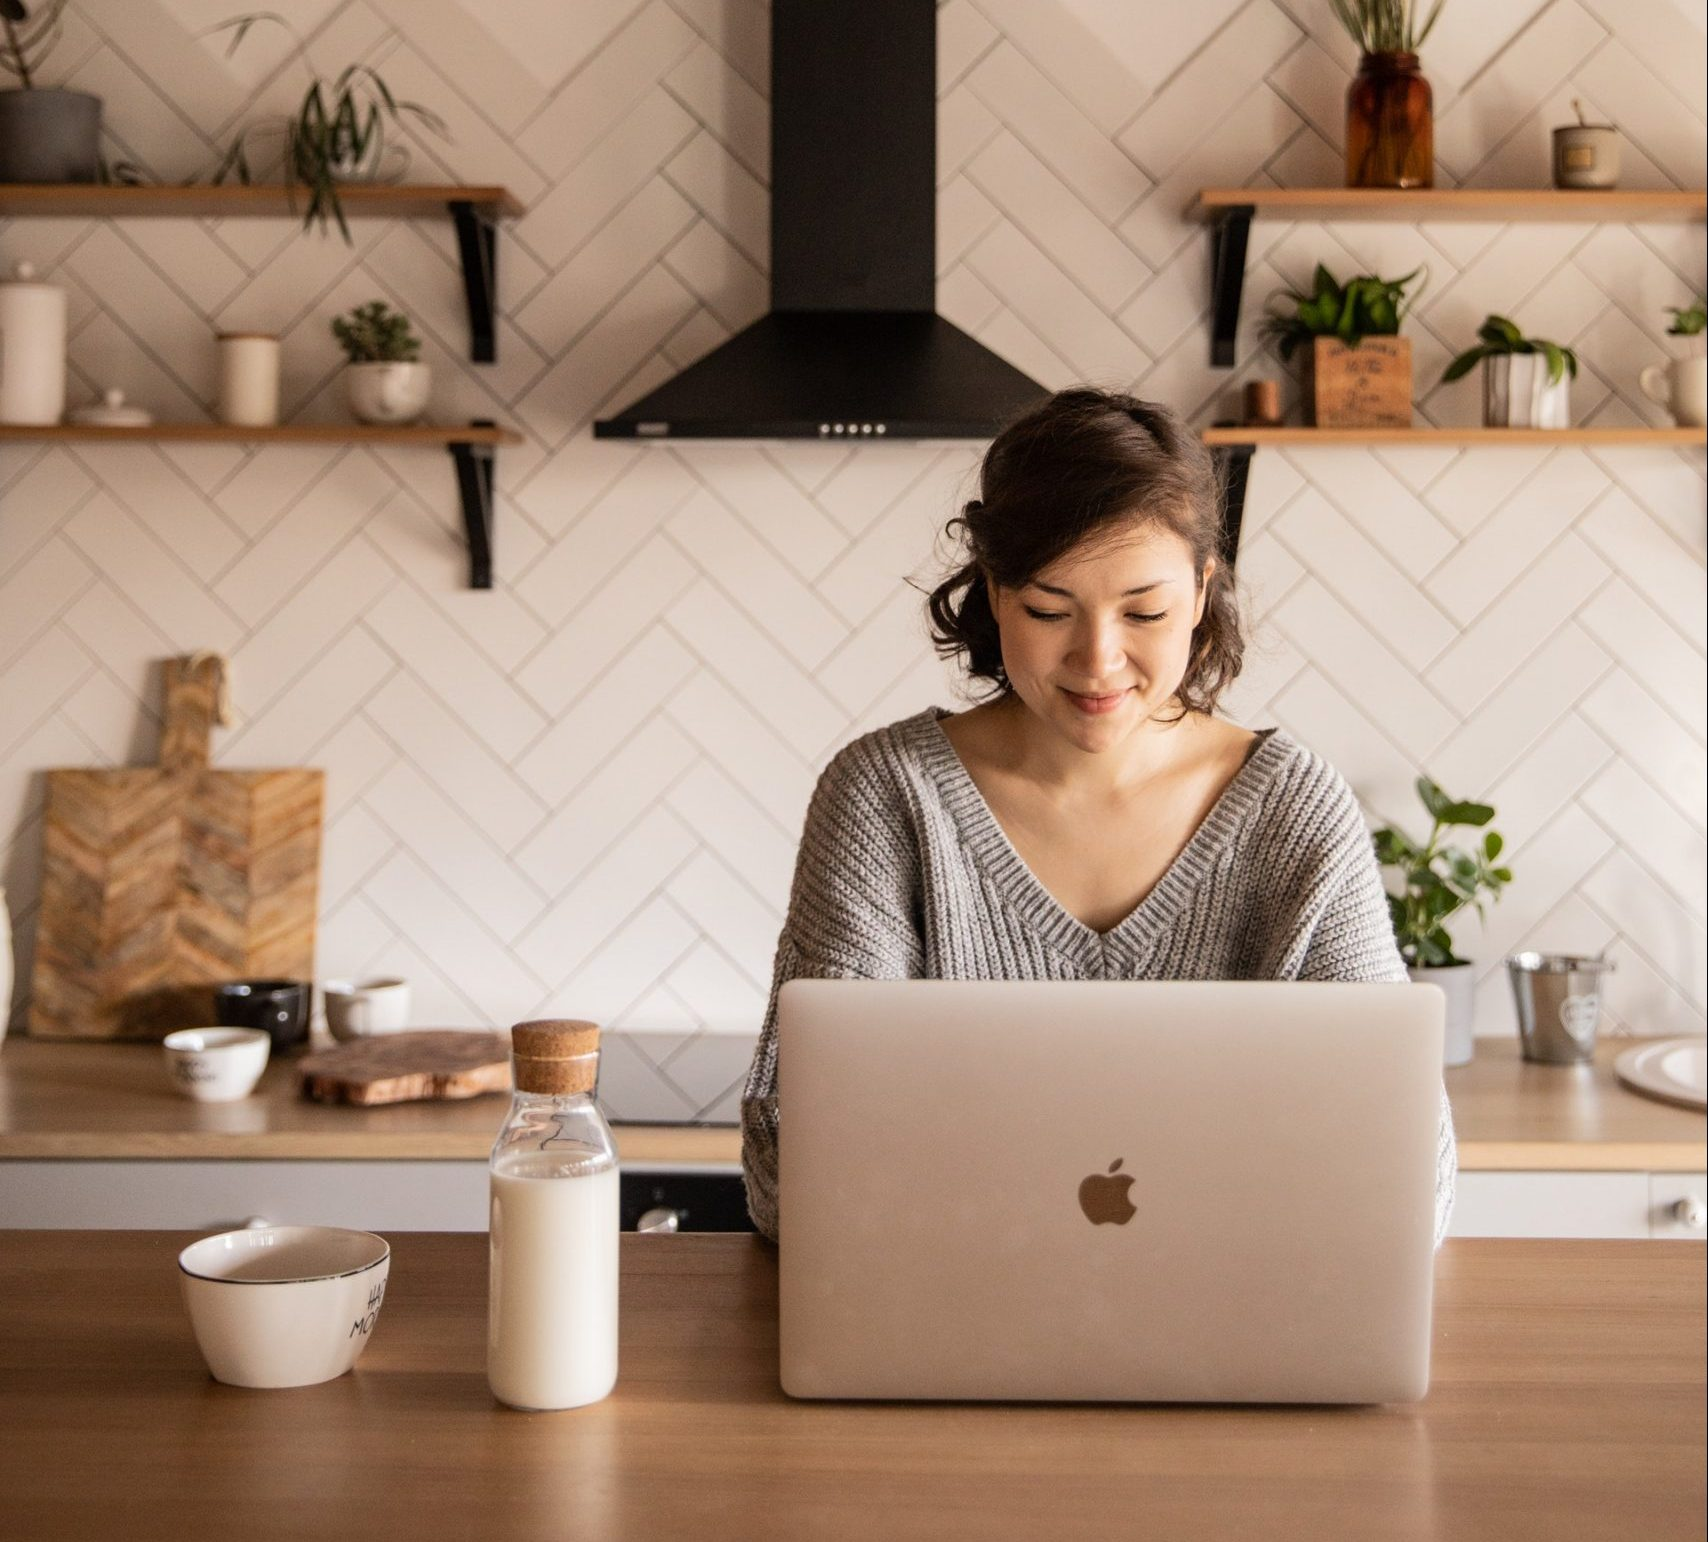 Woman shopping on laptop in contemporary kitchen